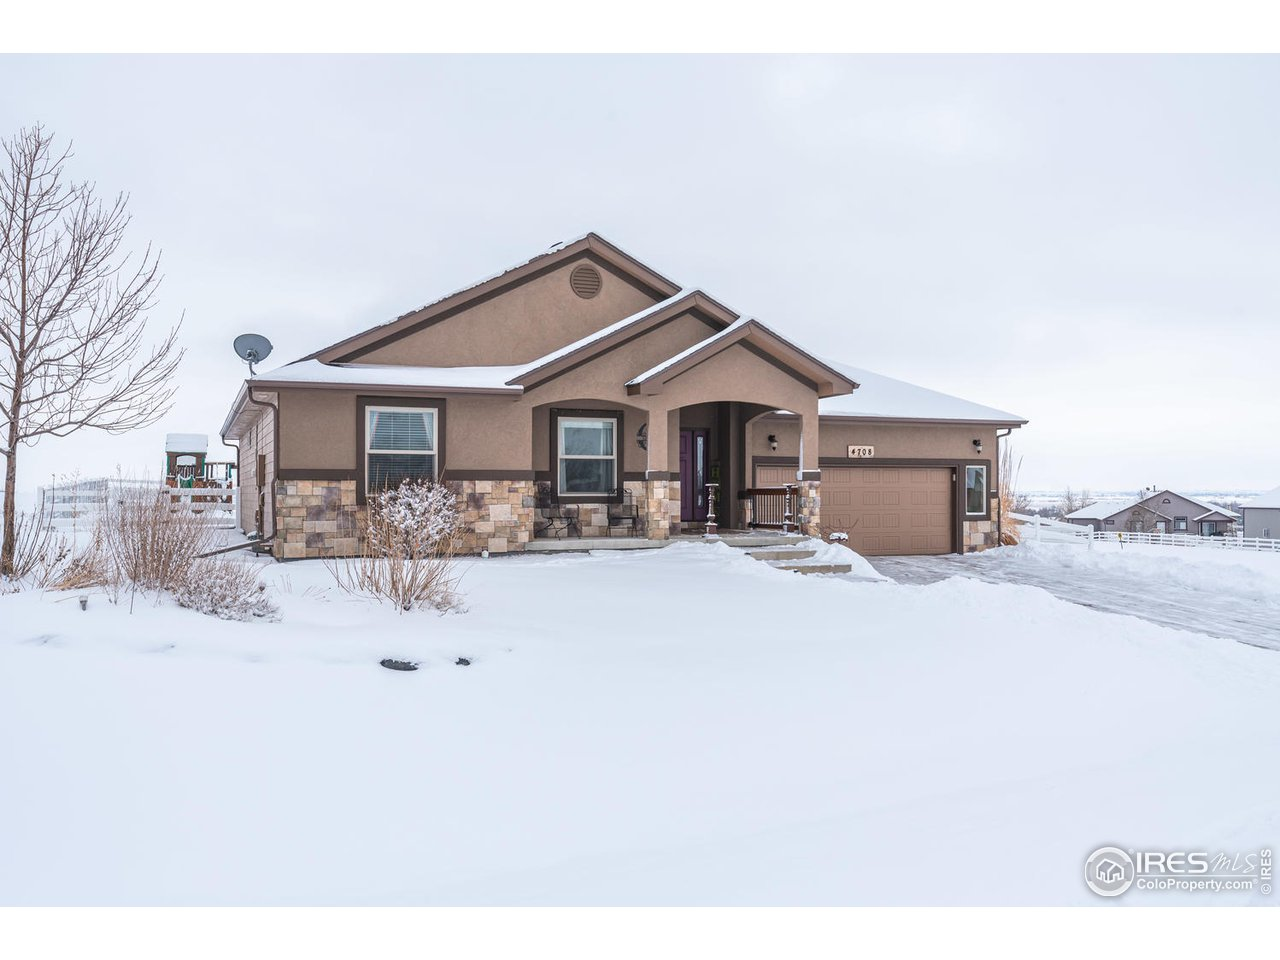 Fantastic ranch style home